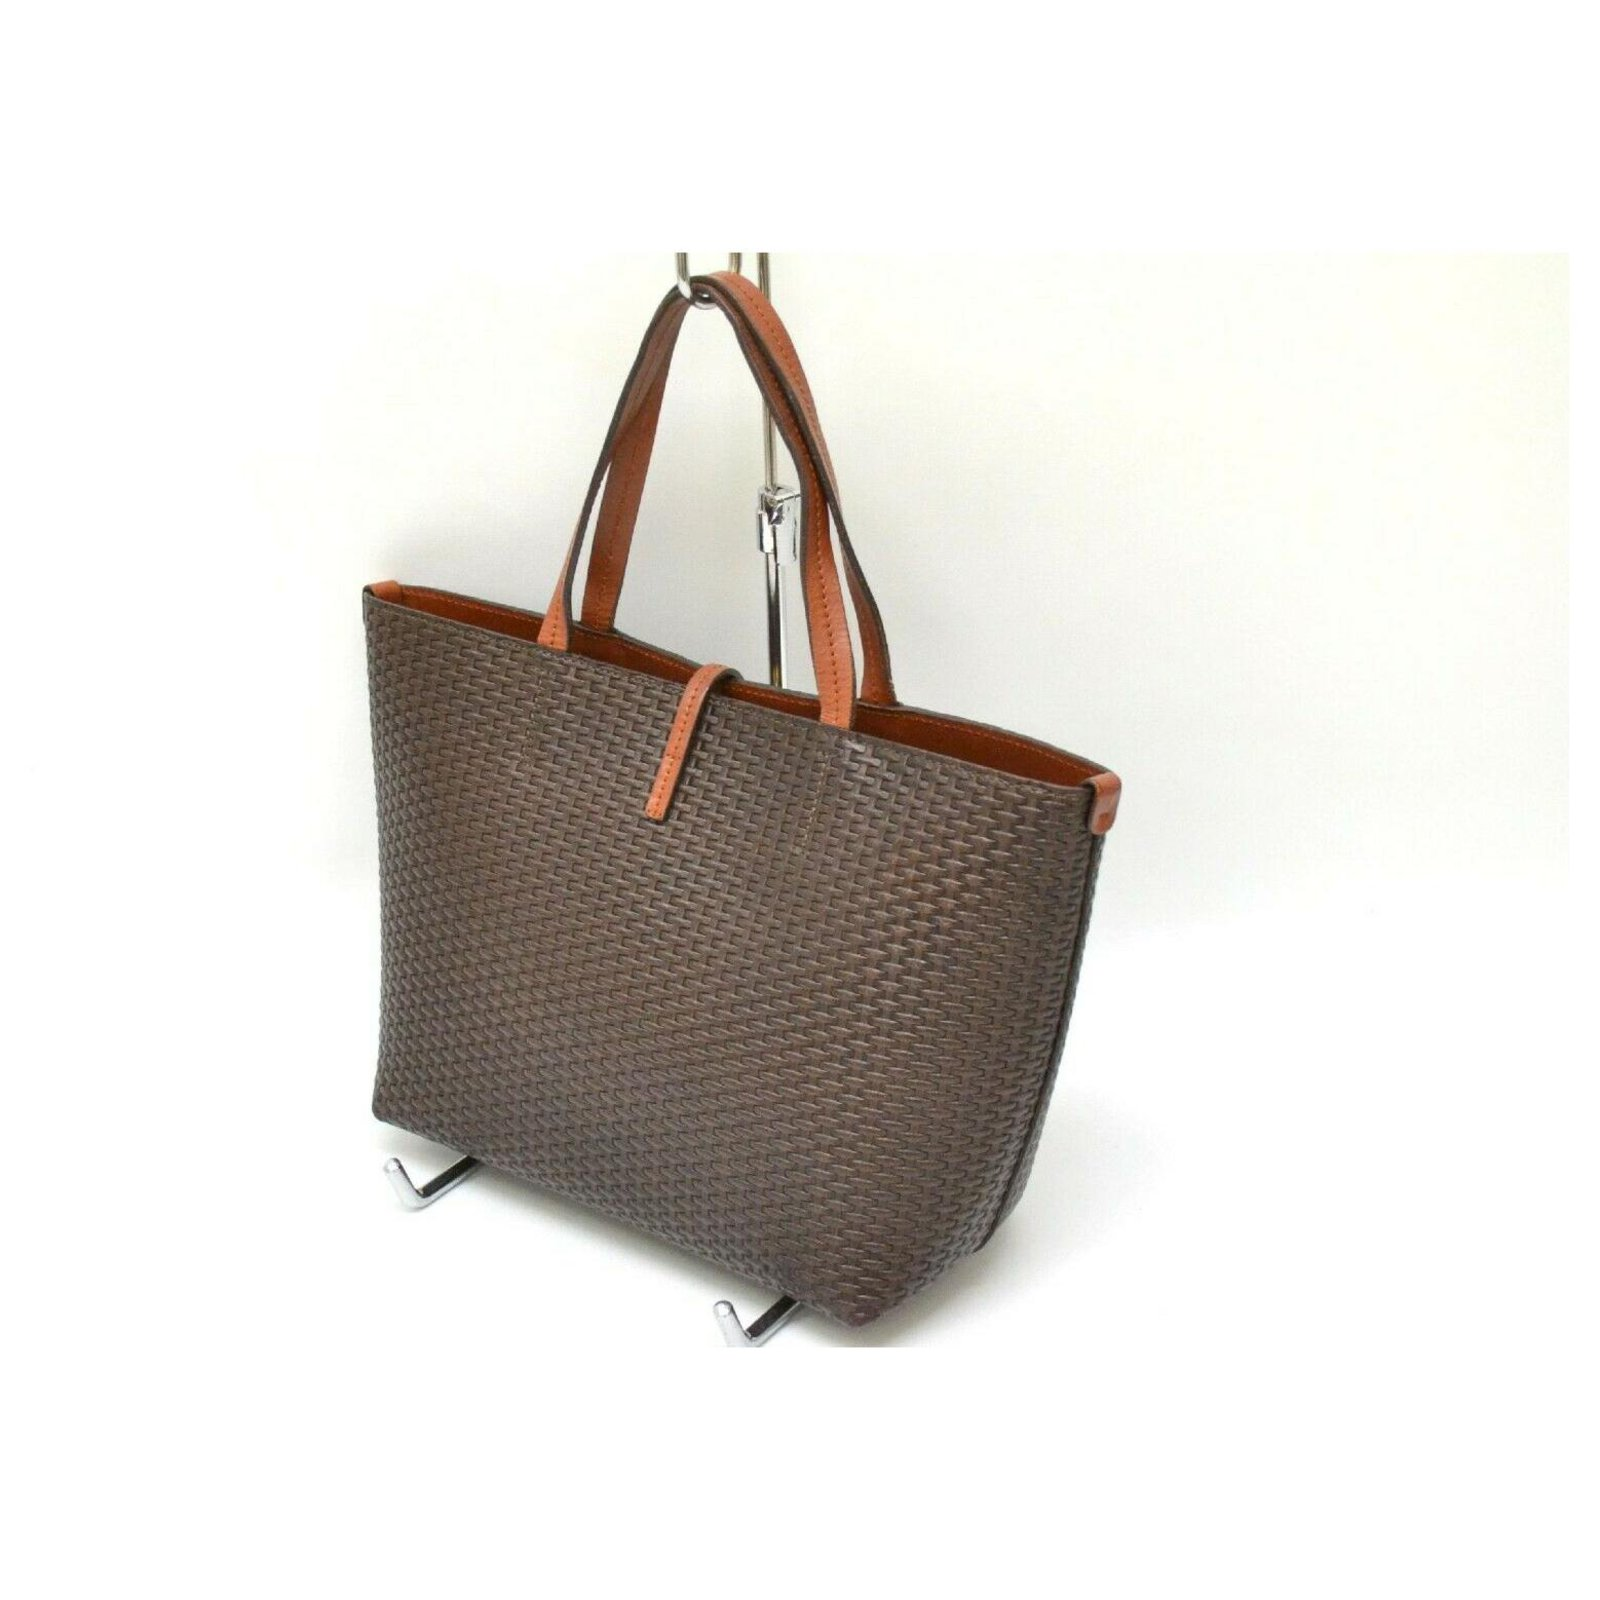 01a707b74d7 Salvatore Ferragamo Salvatore Ferragamo Gancini Tote Bag Totes Leather  Brown ref.132856 - Joli Closet